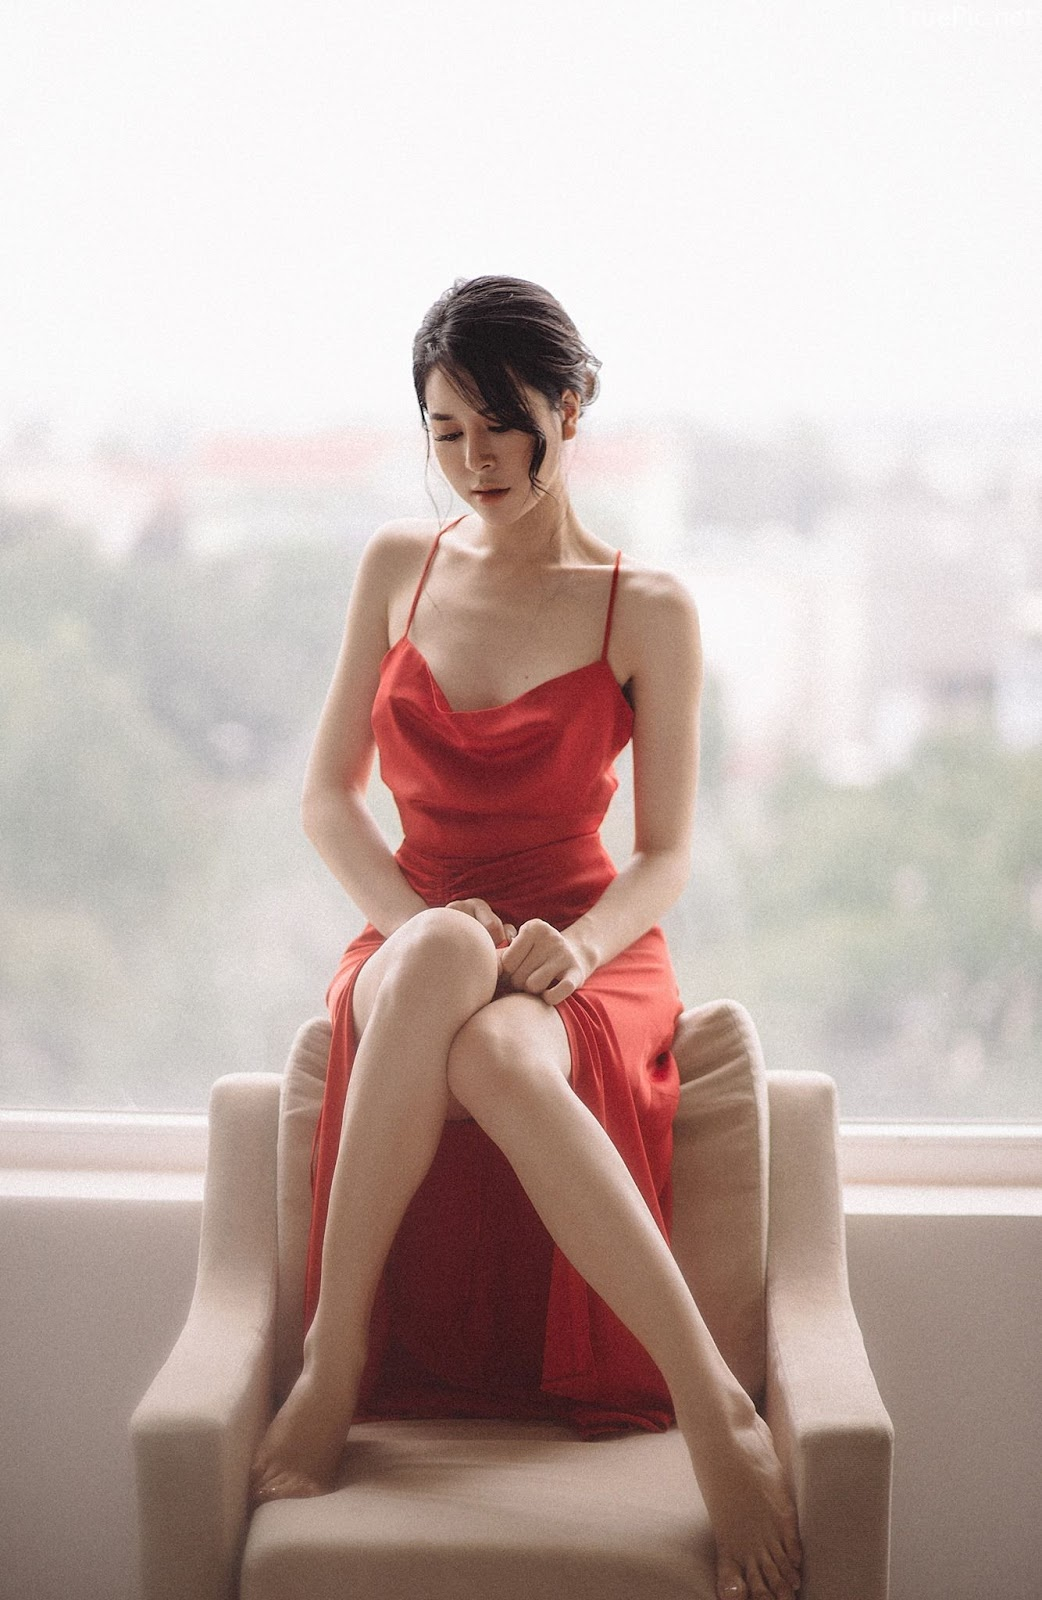 Vietnamese hot model - The beauty of Women with Red Camisole Dress - Photo by Linh Phan - Picture 9